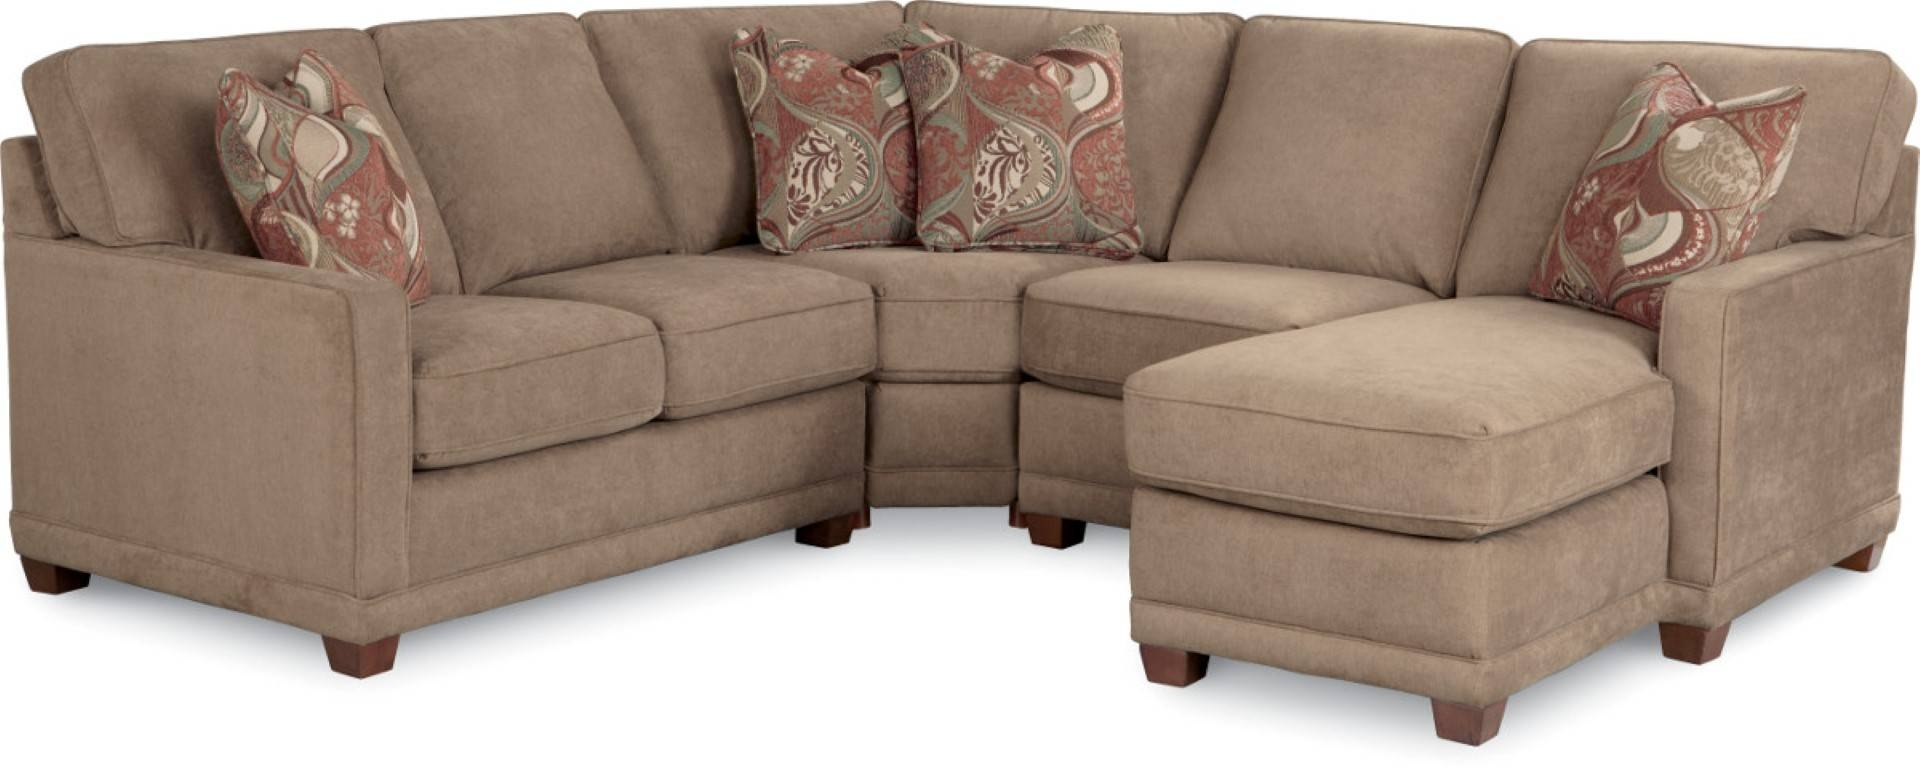 Furniture: Lazyboy Sectional With Cool Various Designs And Colors pertaining to Lazyboy Sectional Sofas (Image 9 of 25)